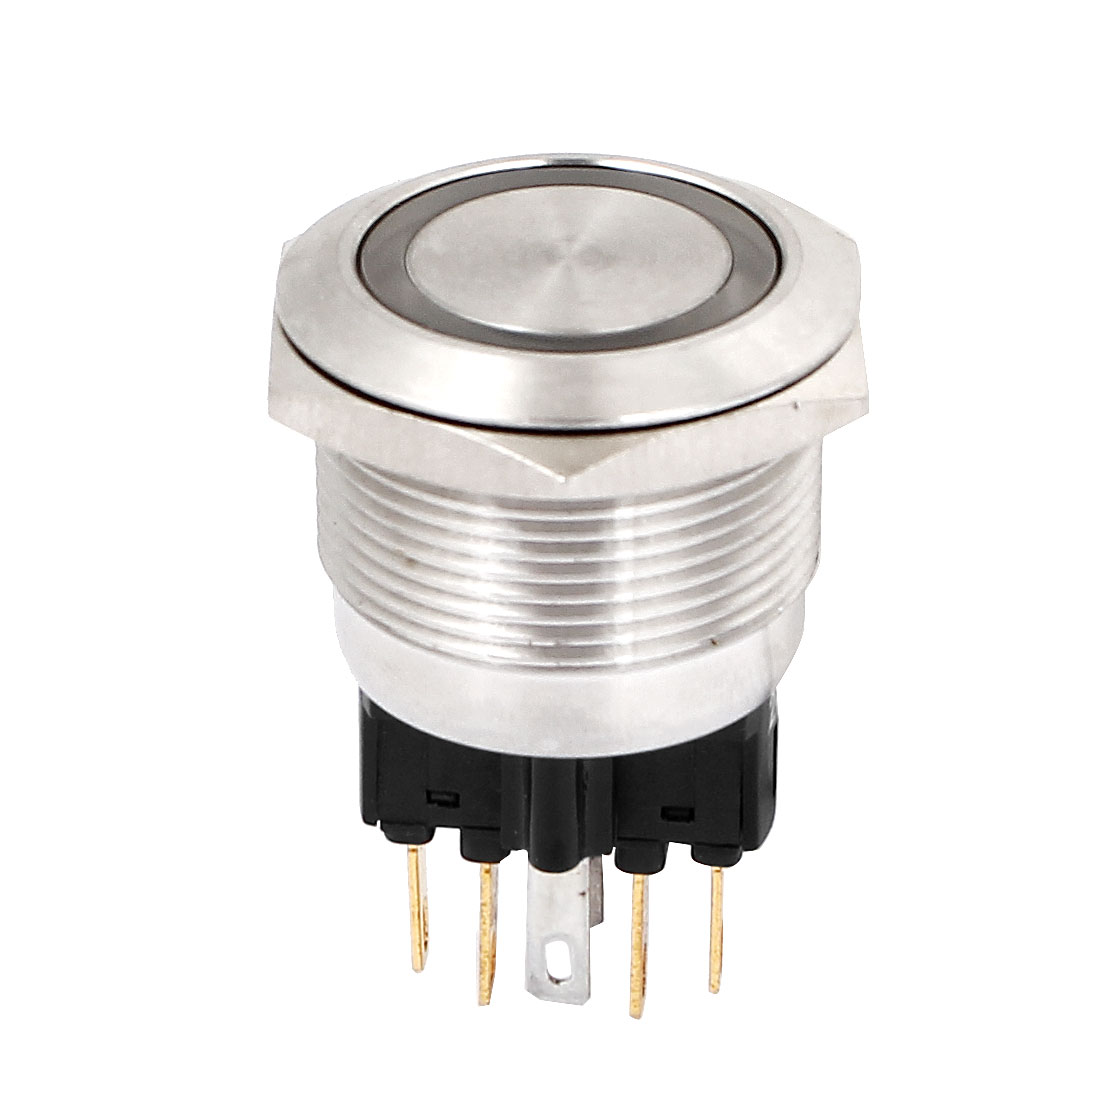 DC 24V Yellow LED Angel Eye Light DPST 1NO 1NC 6Pins 22mm Momentary Stainless Steel Push Button Switch